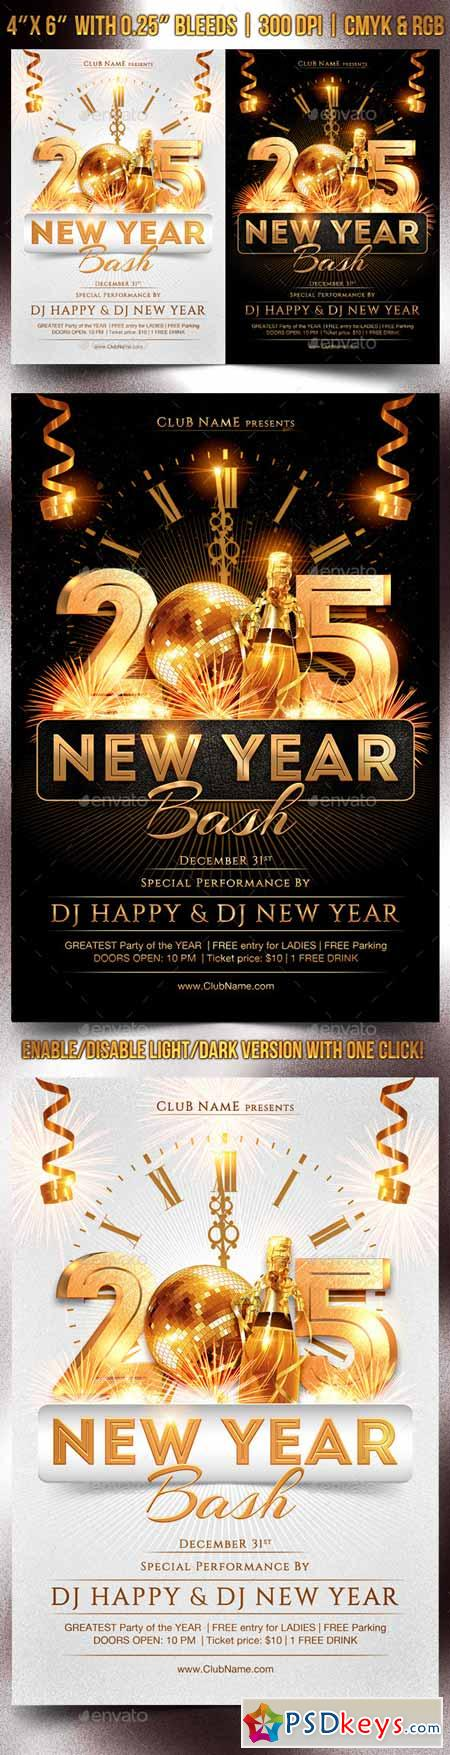 New Year Bash Flyer Template 9582439